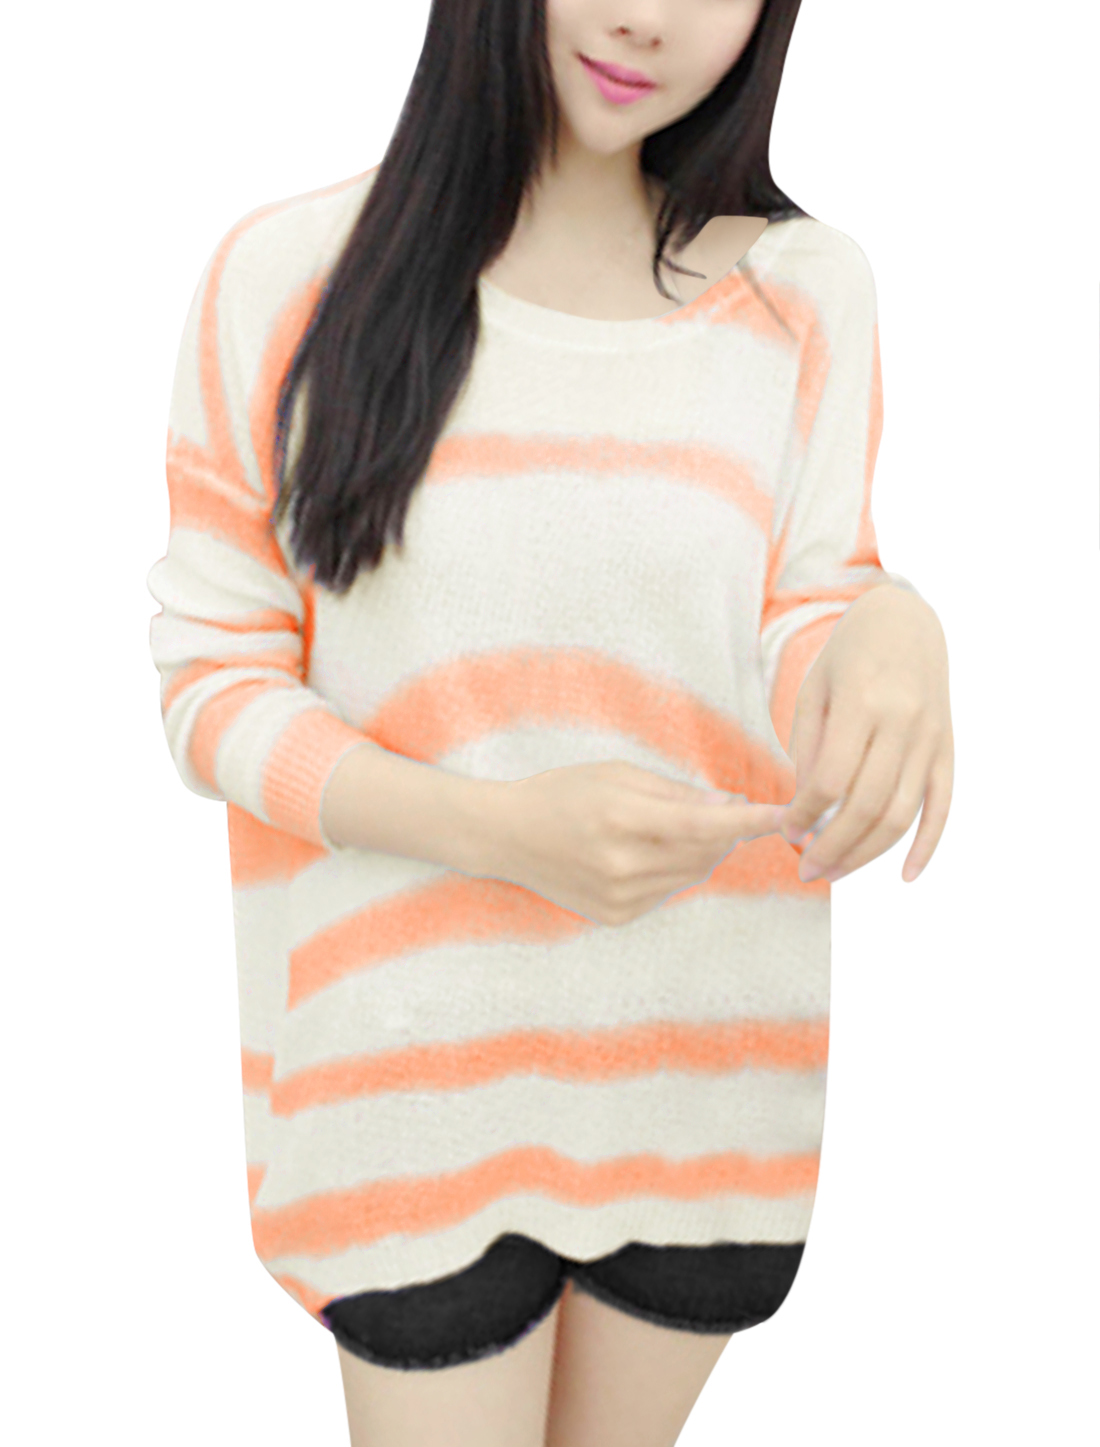 Lady Long Dolman Sleeve See Through Curve Hem Rib Knit Top Light Orange Beige XS